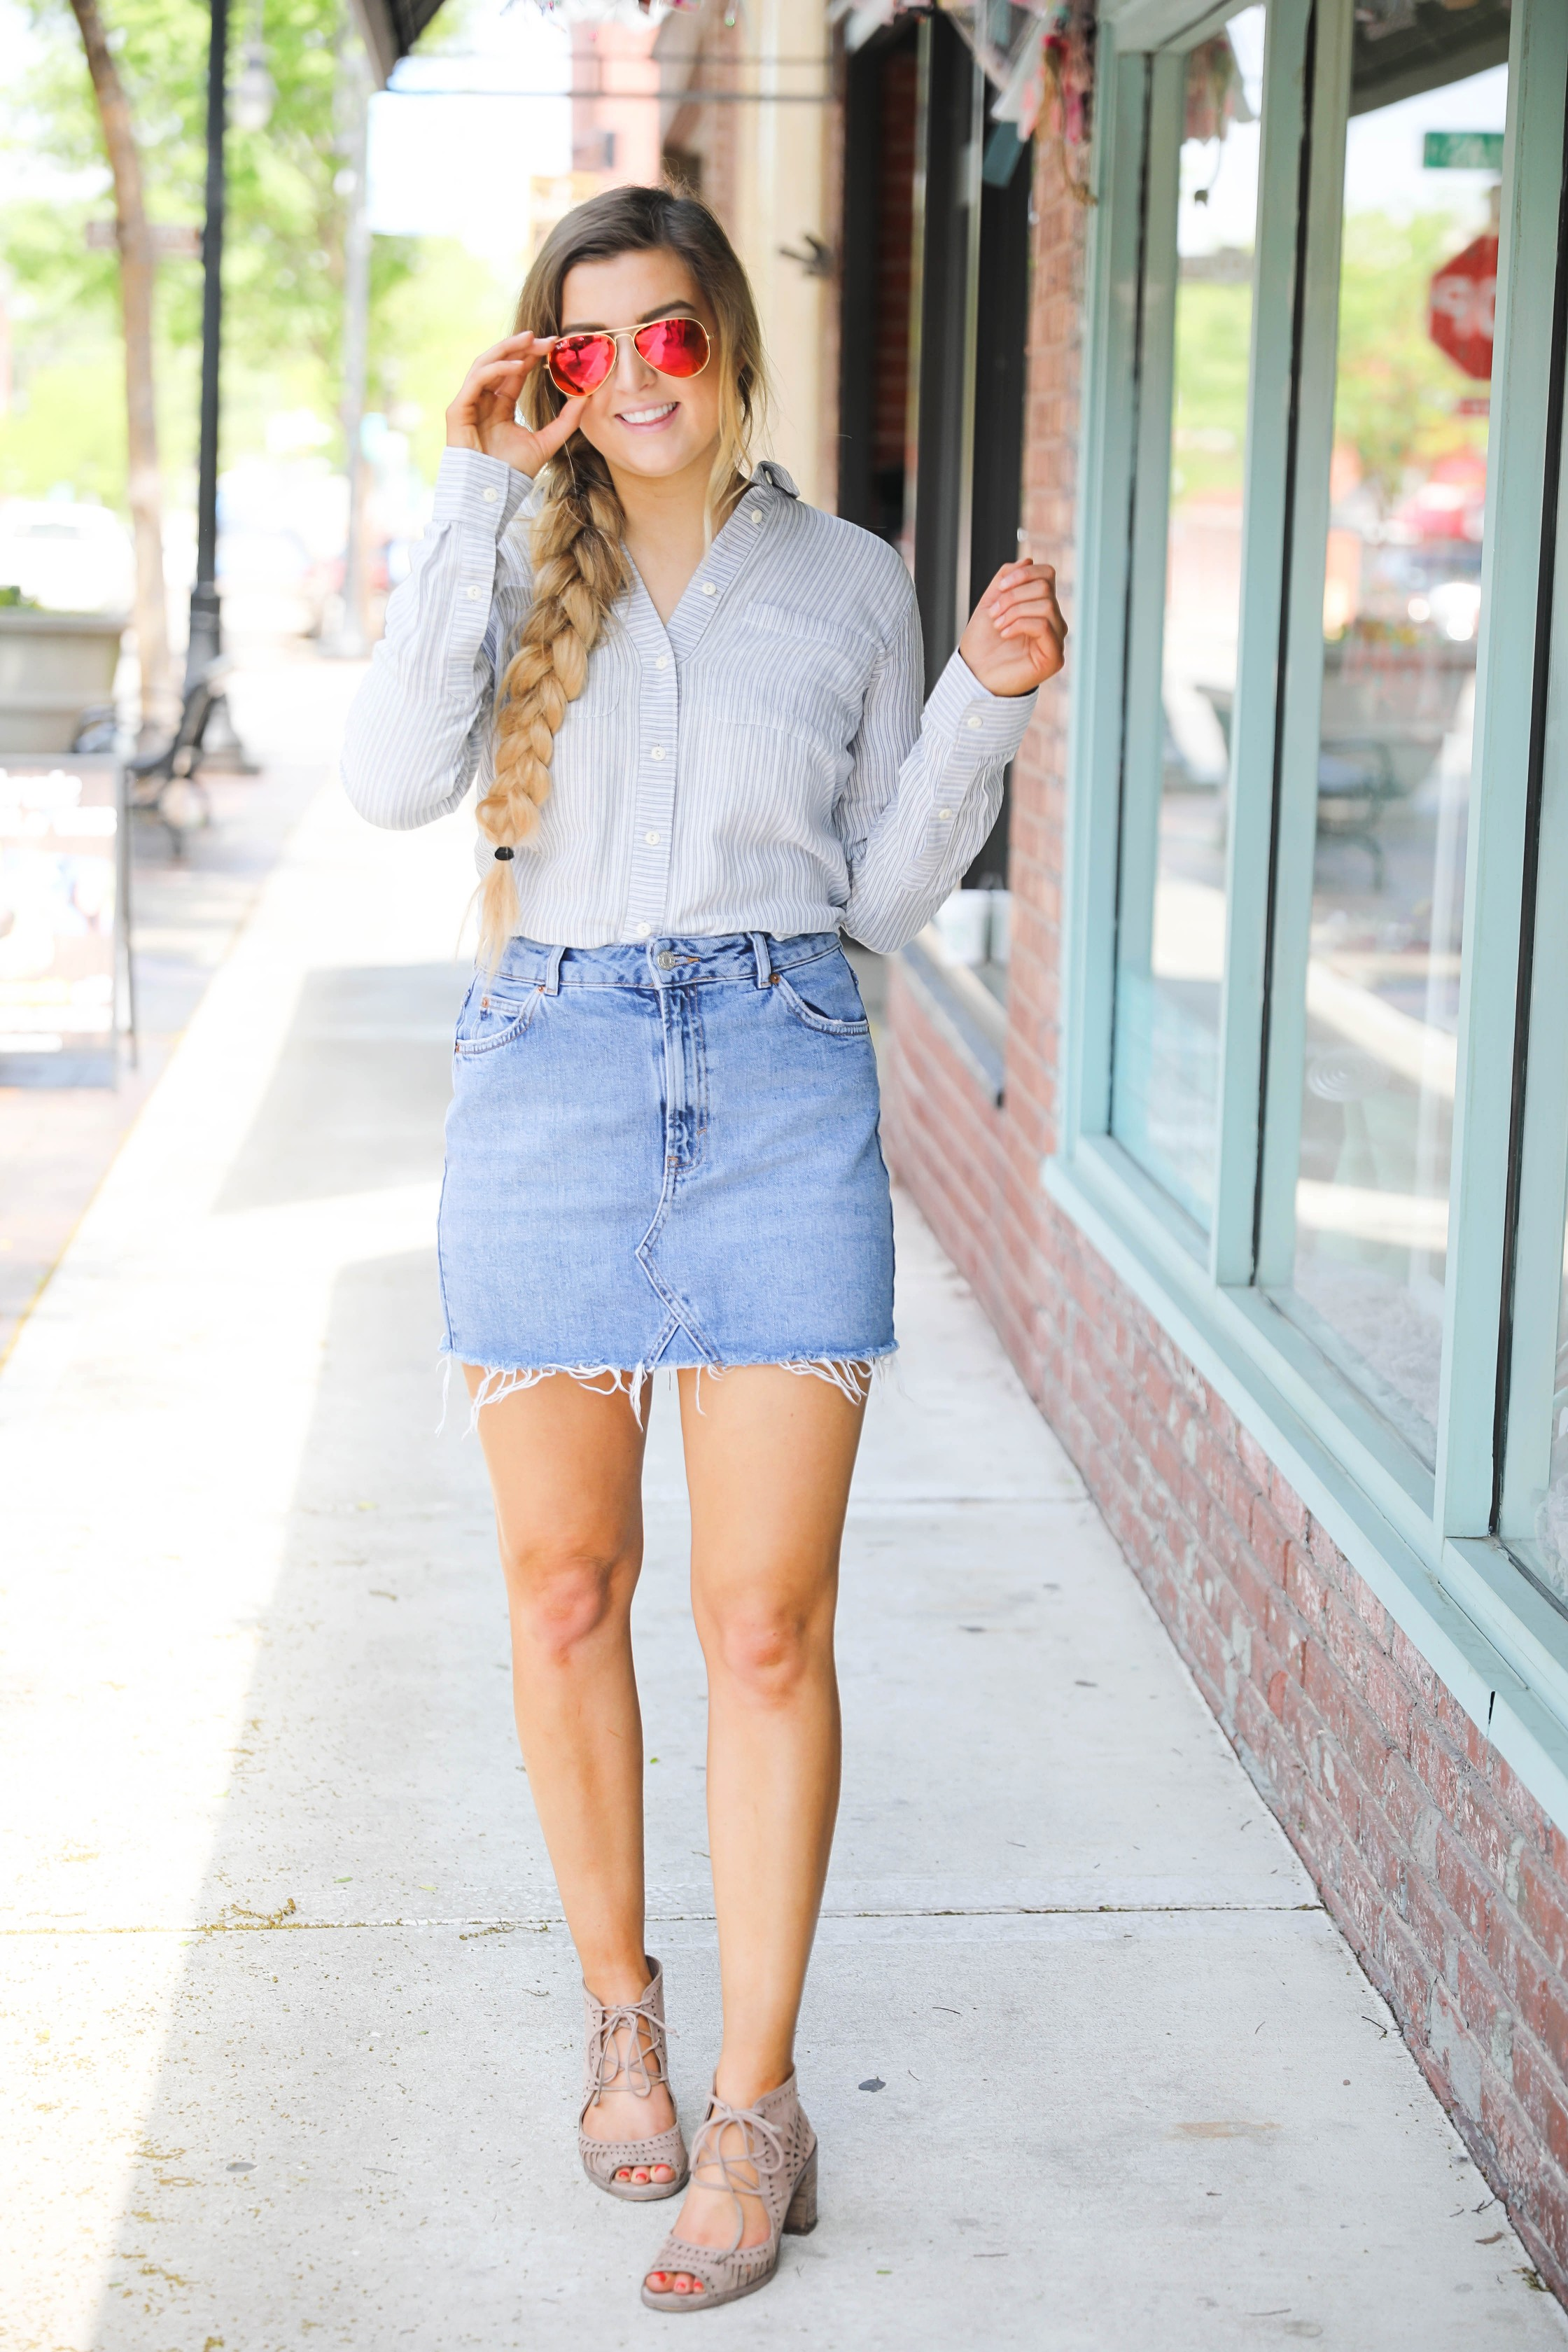 How to Style Jean Skirts | OOTD | daily dose of charm